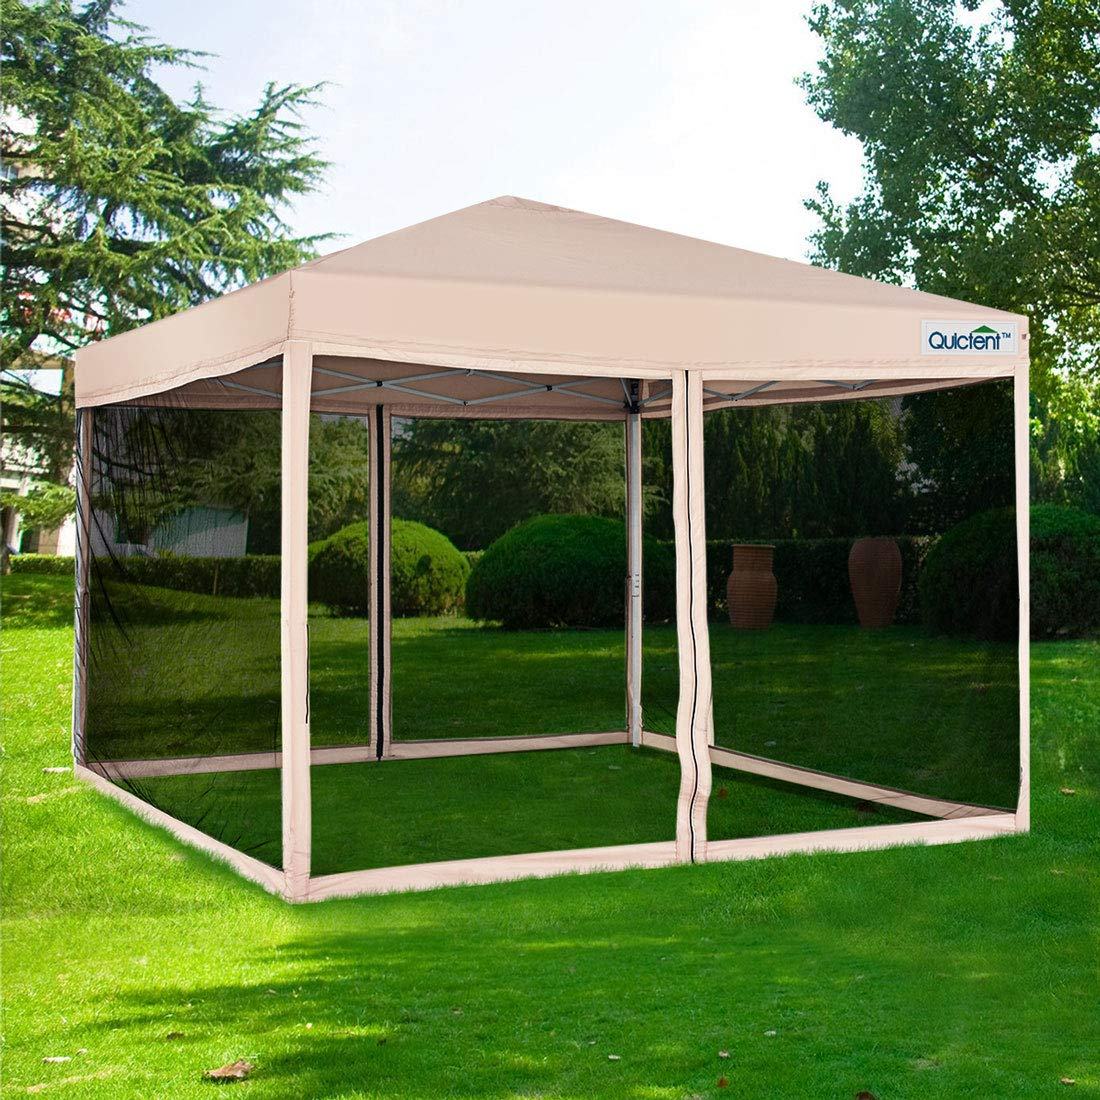 Quictent 10x10 Easy Pop up Screen Canopy with Netting Pop up Screen House Tent Tan by Quictent